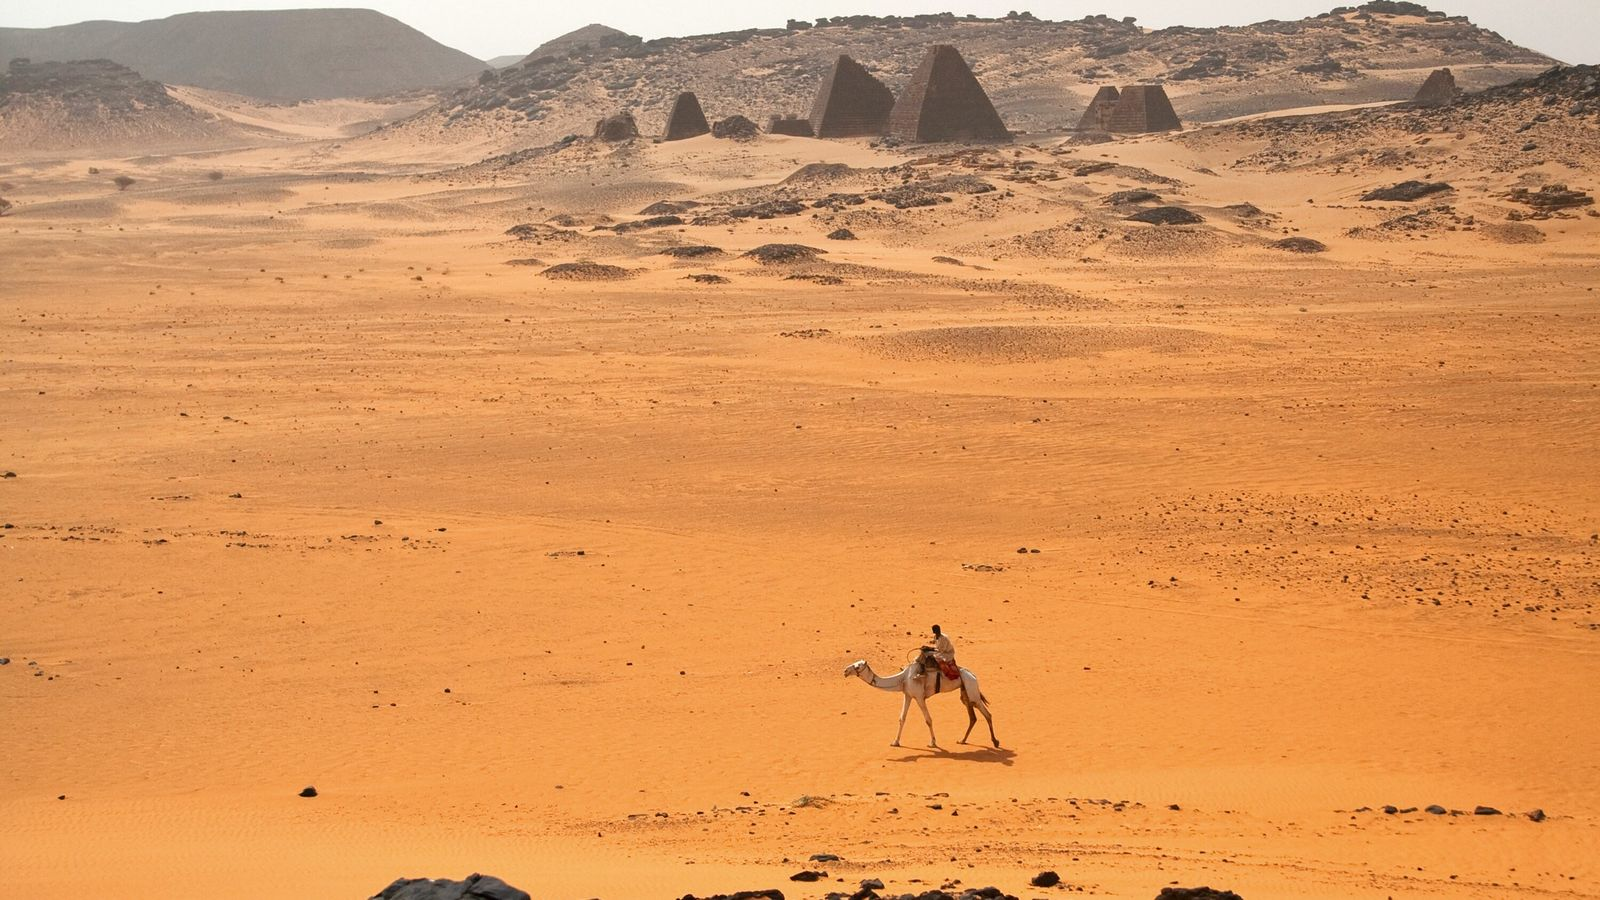 A camel and rider pass the pyramids of Meroë, Sudan.